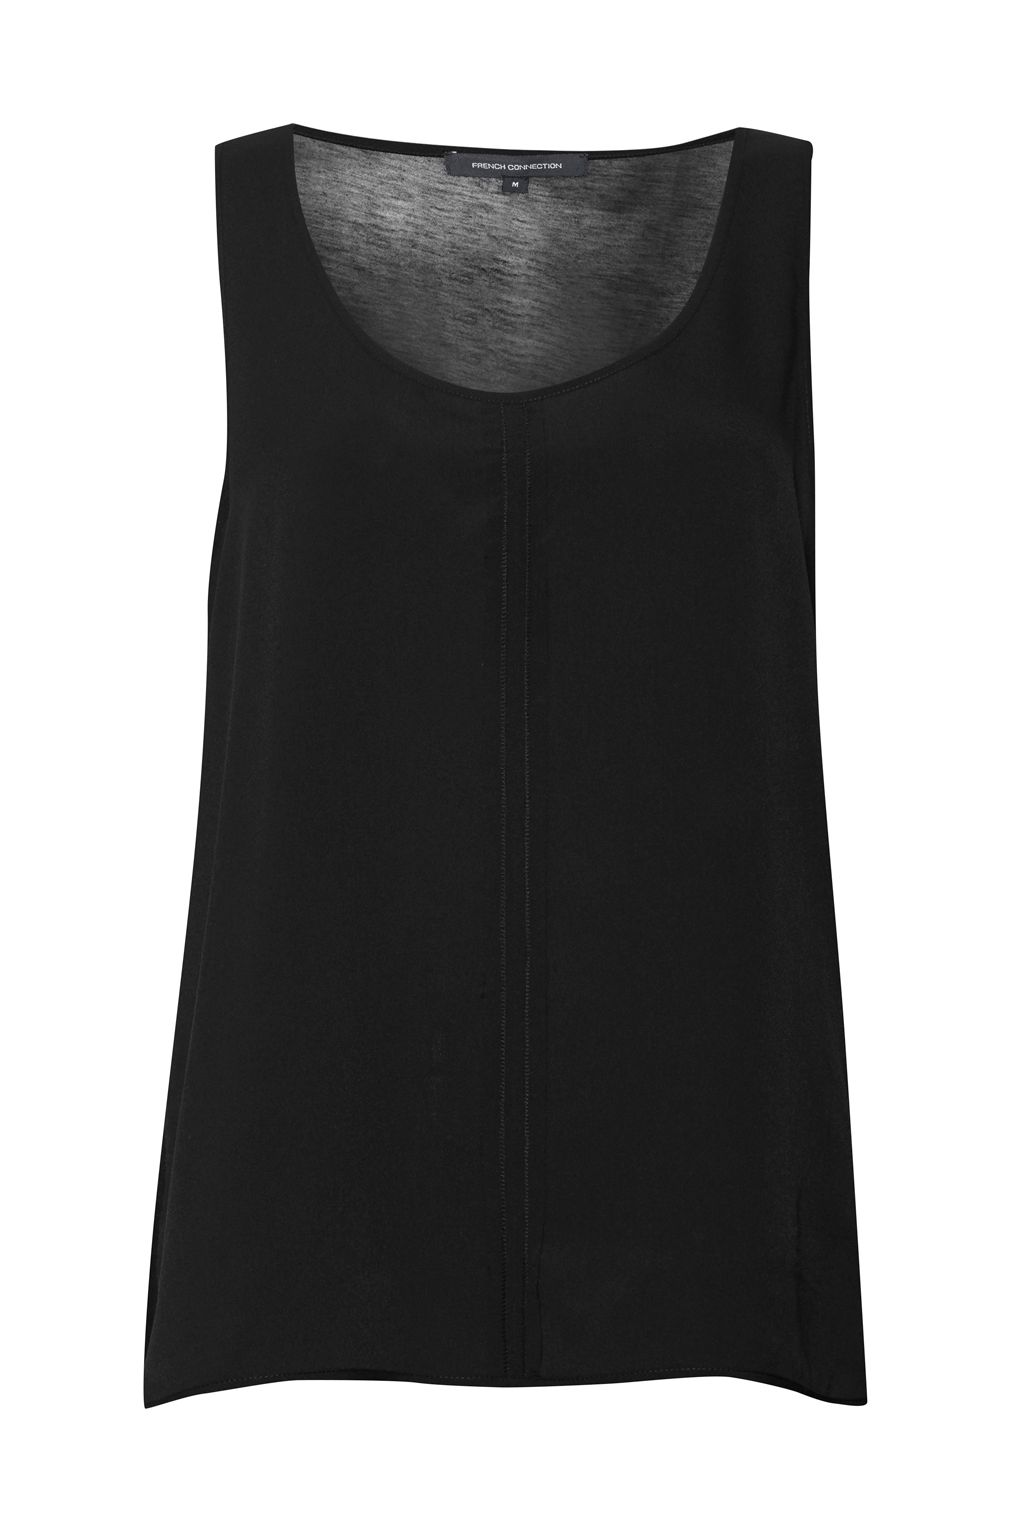 French Connection Clee Crepe Light Vest Top, Black